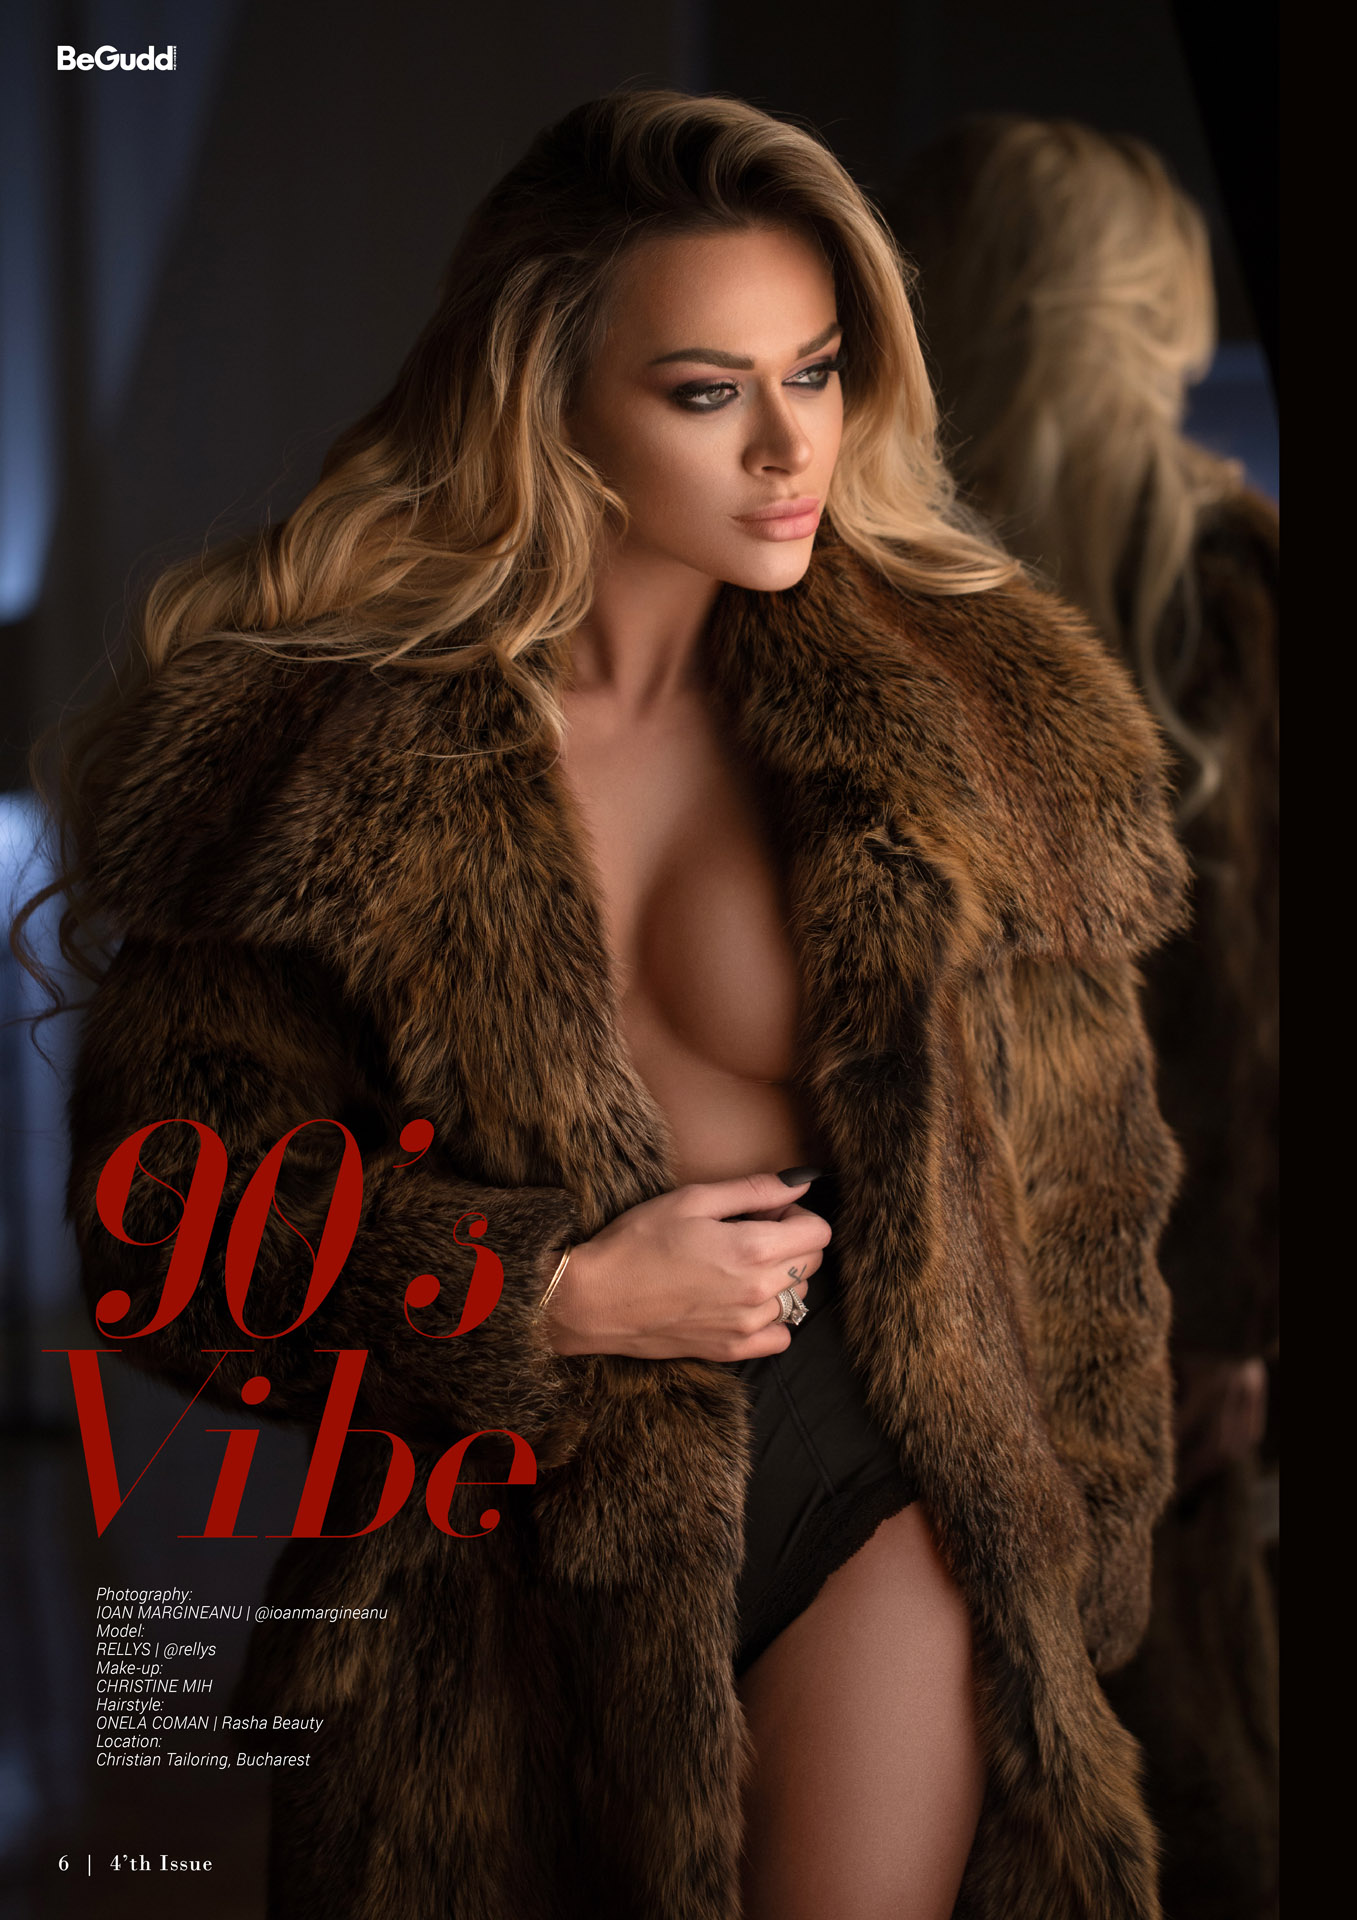 begudd magazine rellys romanian model nude sexy lingerie glamour erotic fur coat winter ioan margineanu